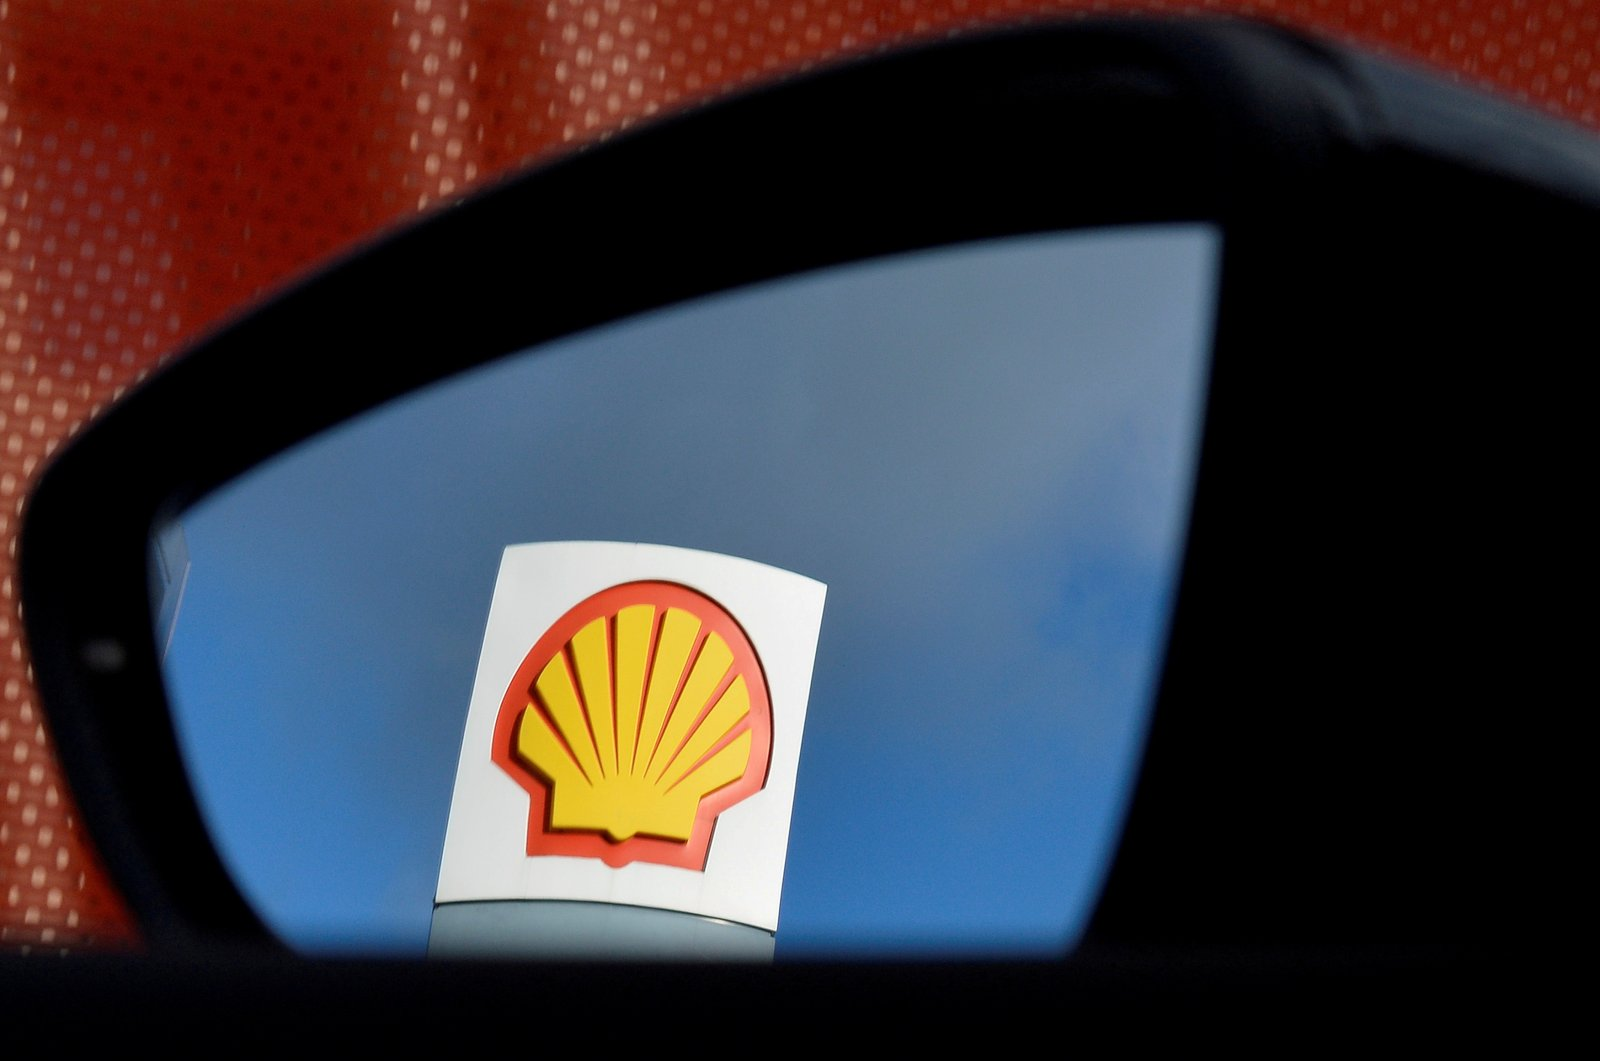 A Shell logo is seen reflected in a car's side mirror at a petrol station in west London, Britain, Jan. 29, 2015. (Reuters Photo)